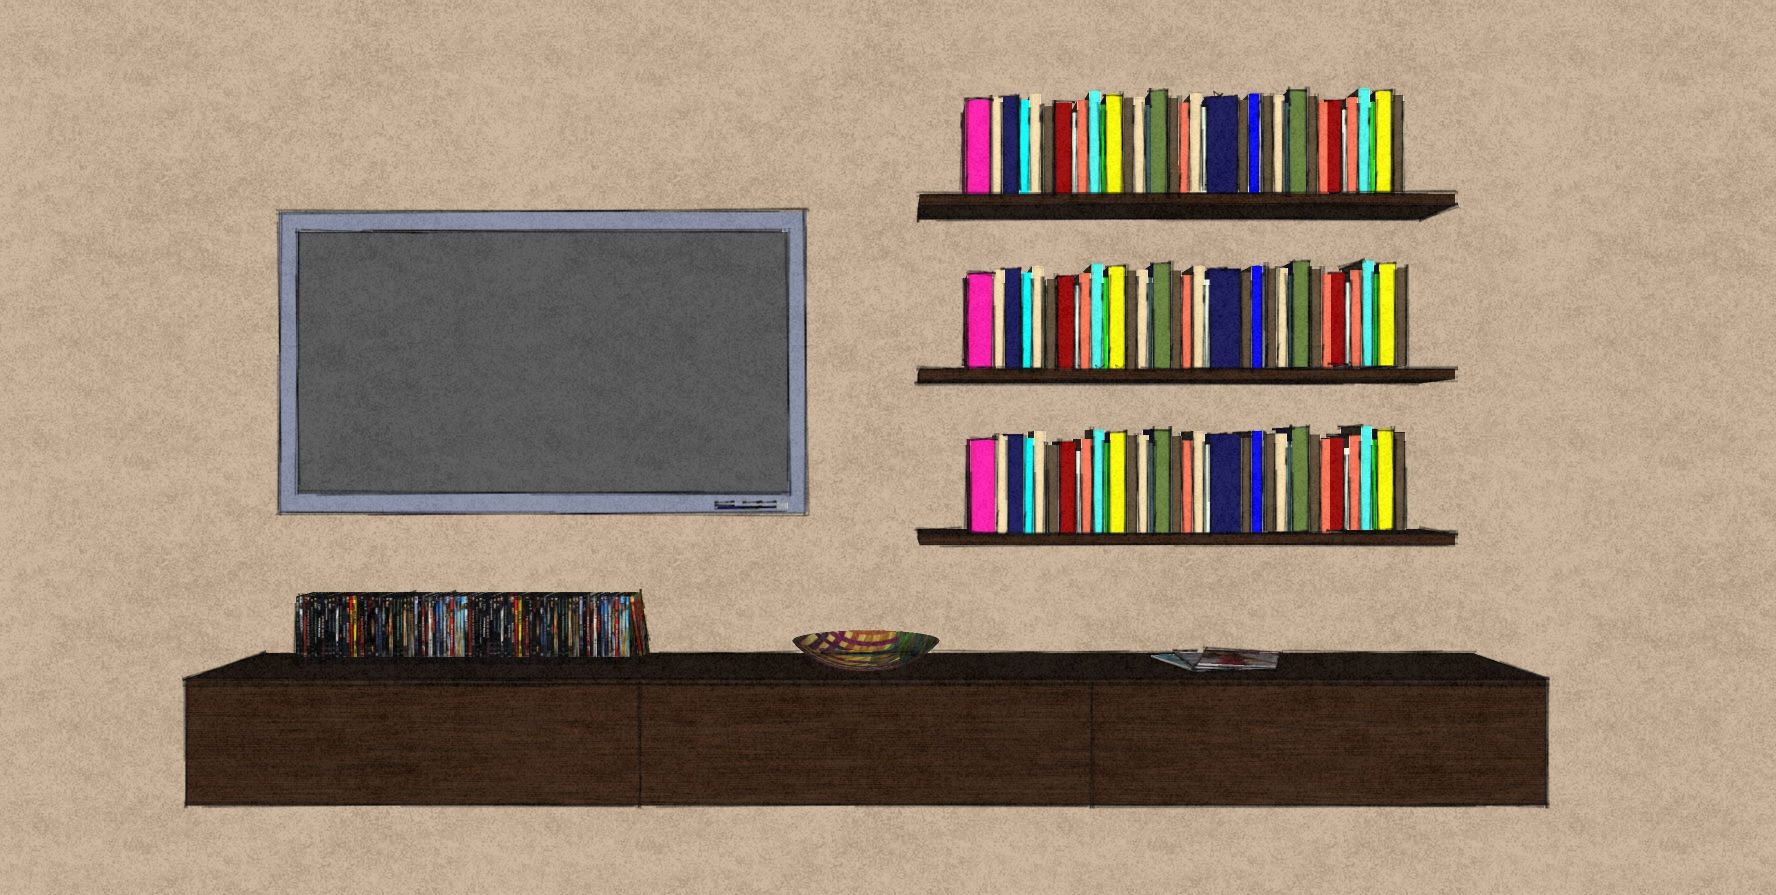 D18 wall hung media cabinets and shelves in Therm Oak.jpg